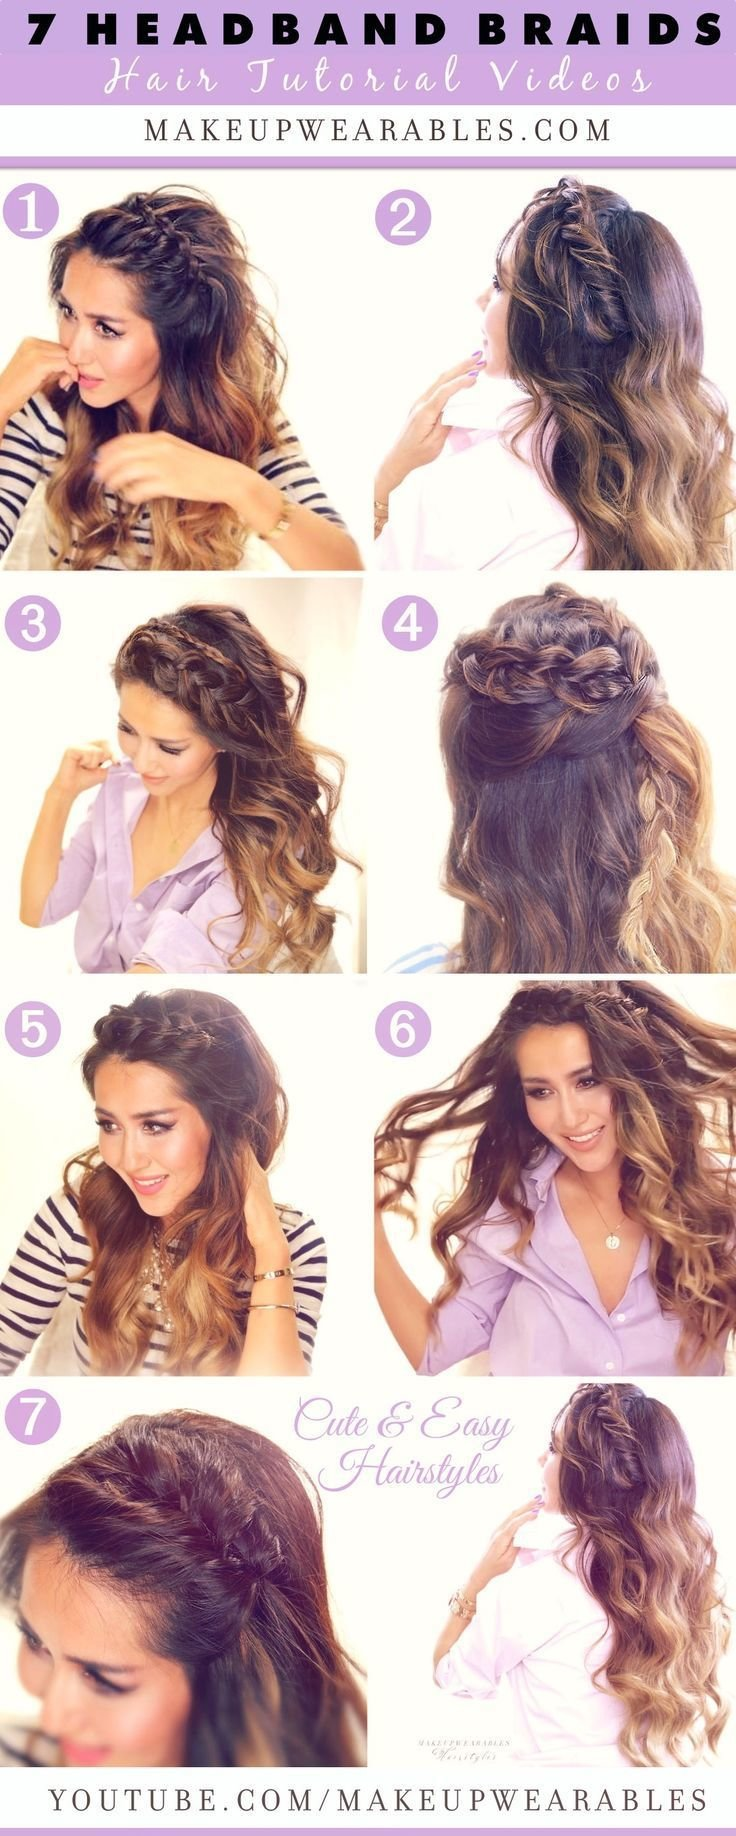 The Best 7 Cute Easy Headband Braid Hairstyles To Try In 2015 Pictures